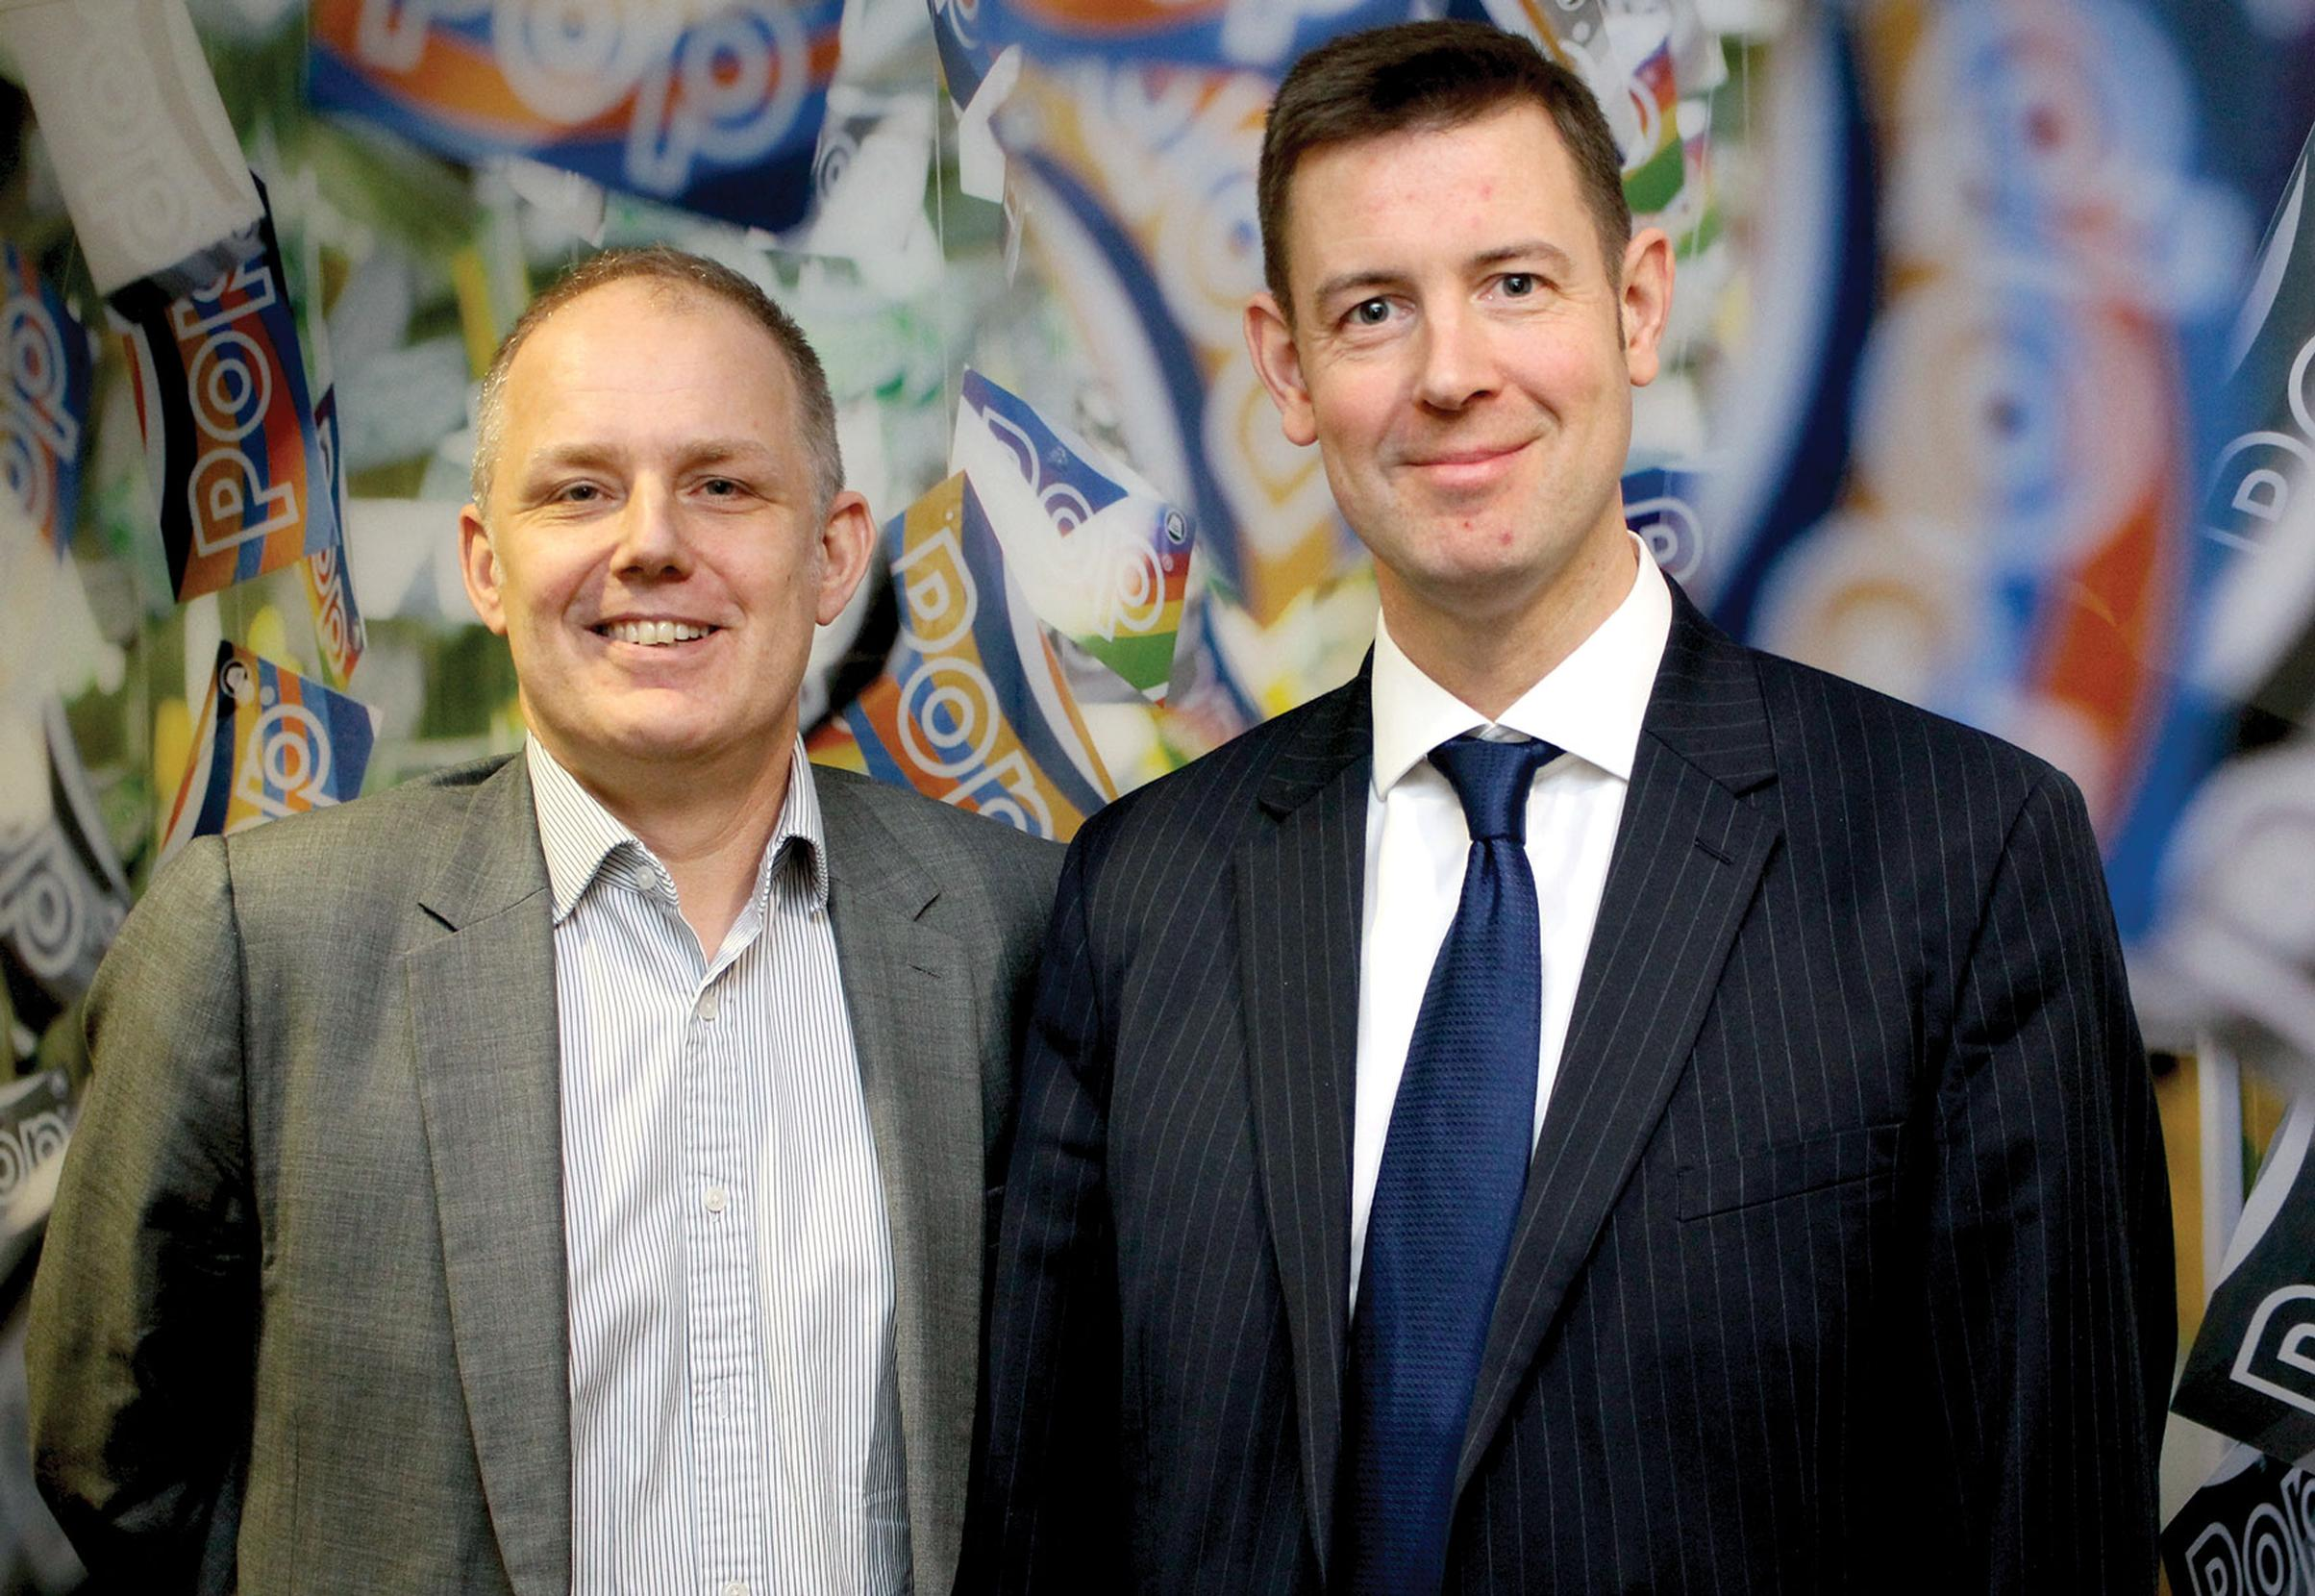 Urban Transport Group director Jonathan Bray (left) and chair Tobyn Hughes